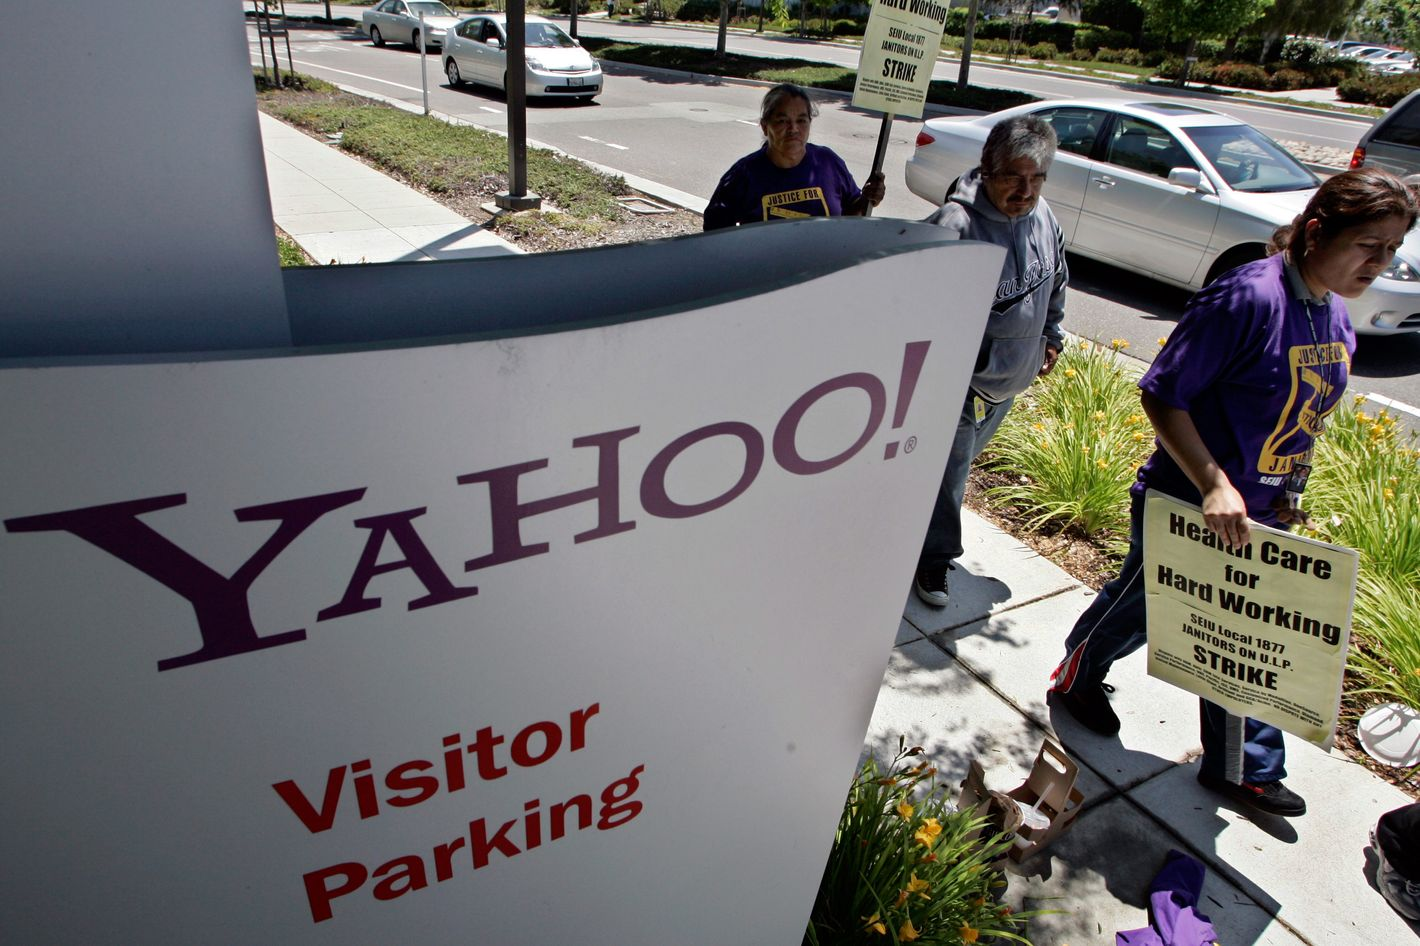 Silicon Valley's Anti-Unionism, Now With a Side of Class Warfare